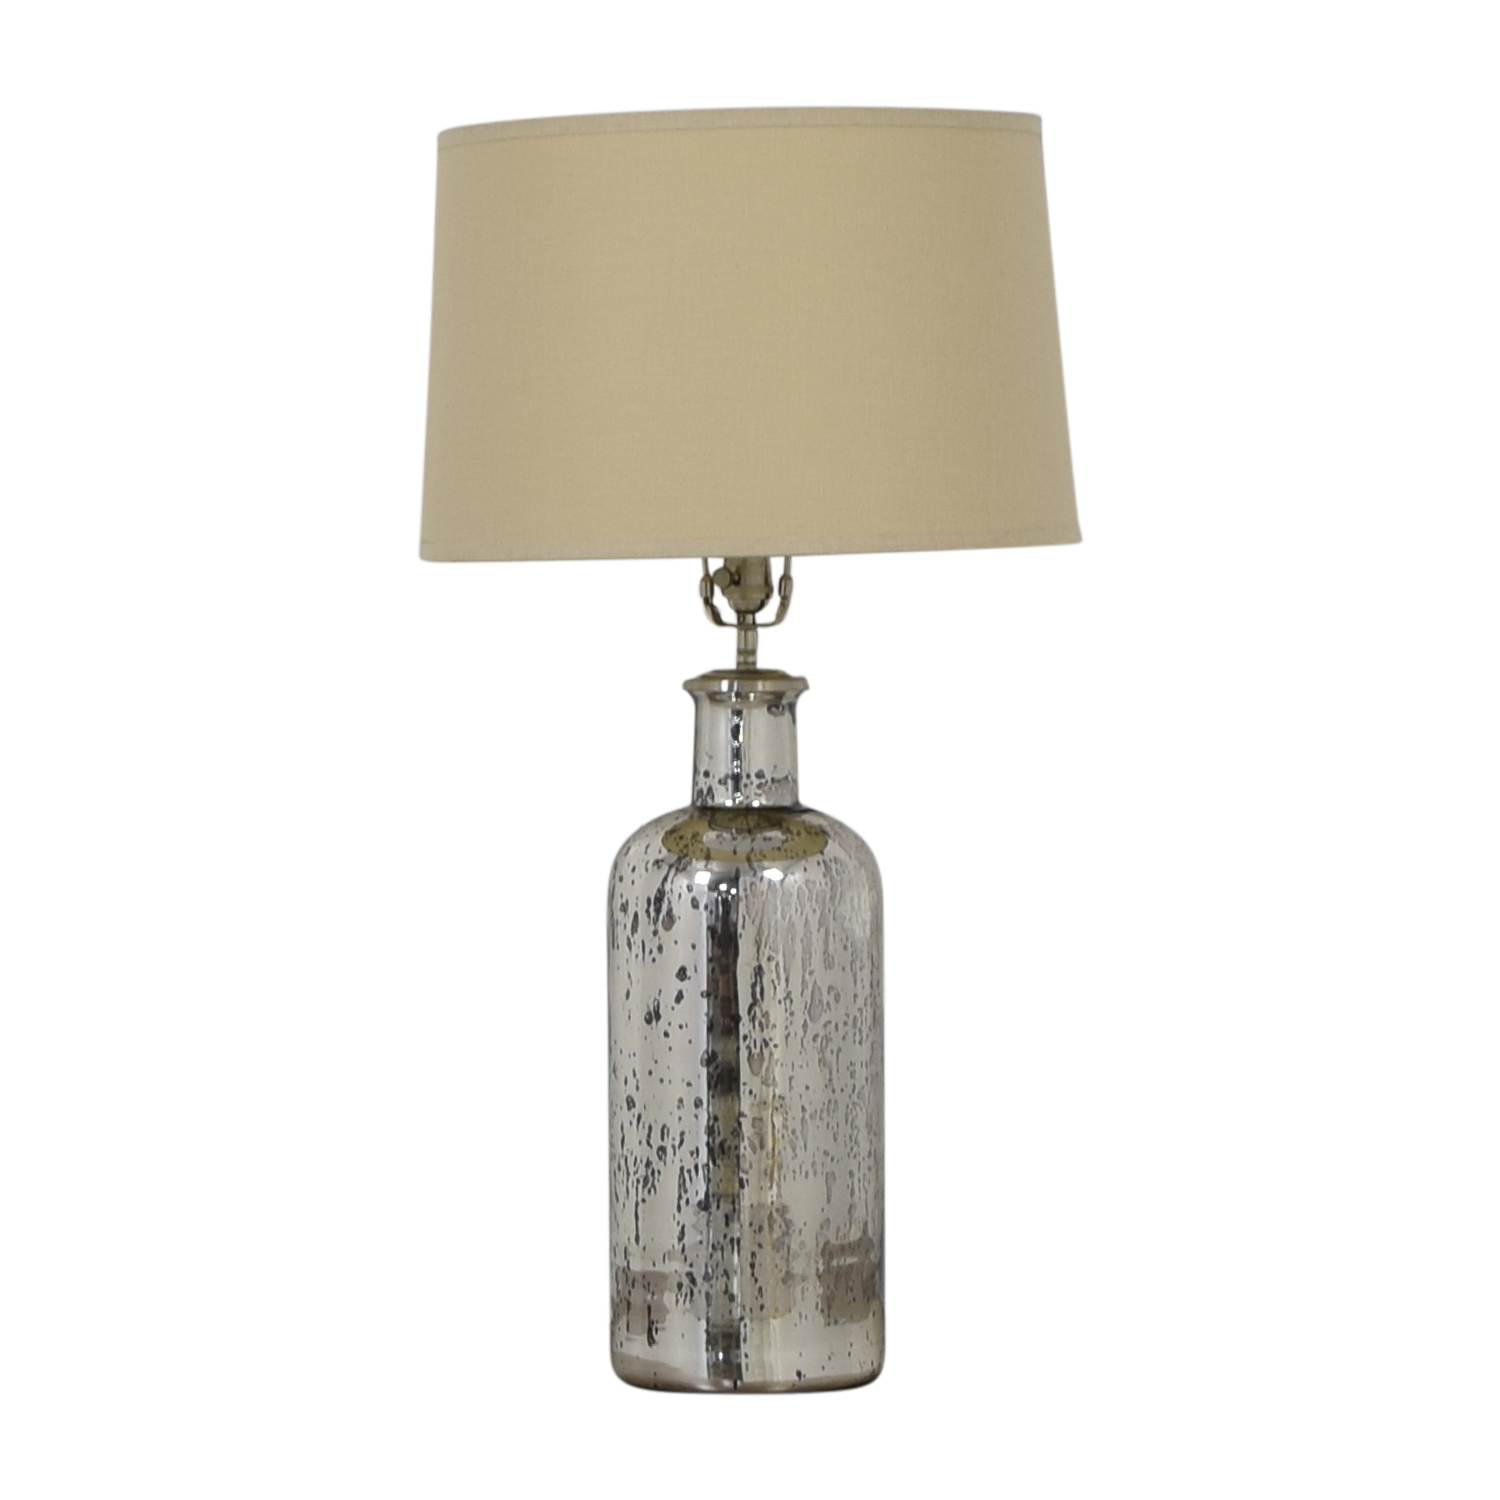 Restoration Hardware Restoration Hardware 19th C. Vintage Mercury Glass Medium Table Lamp discount